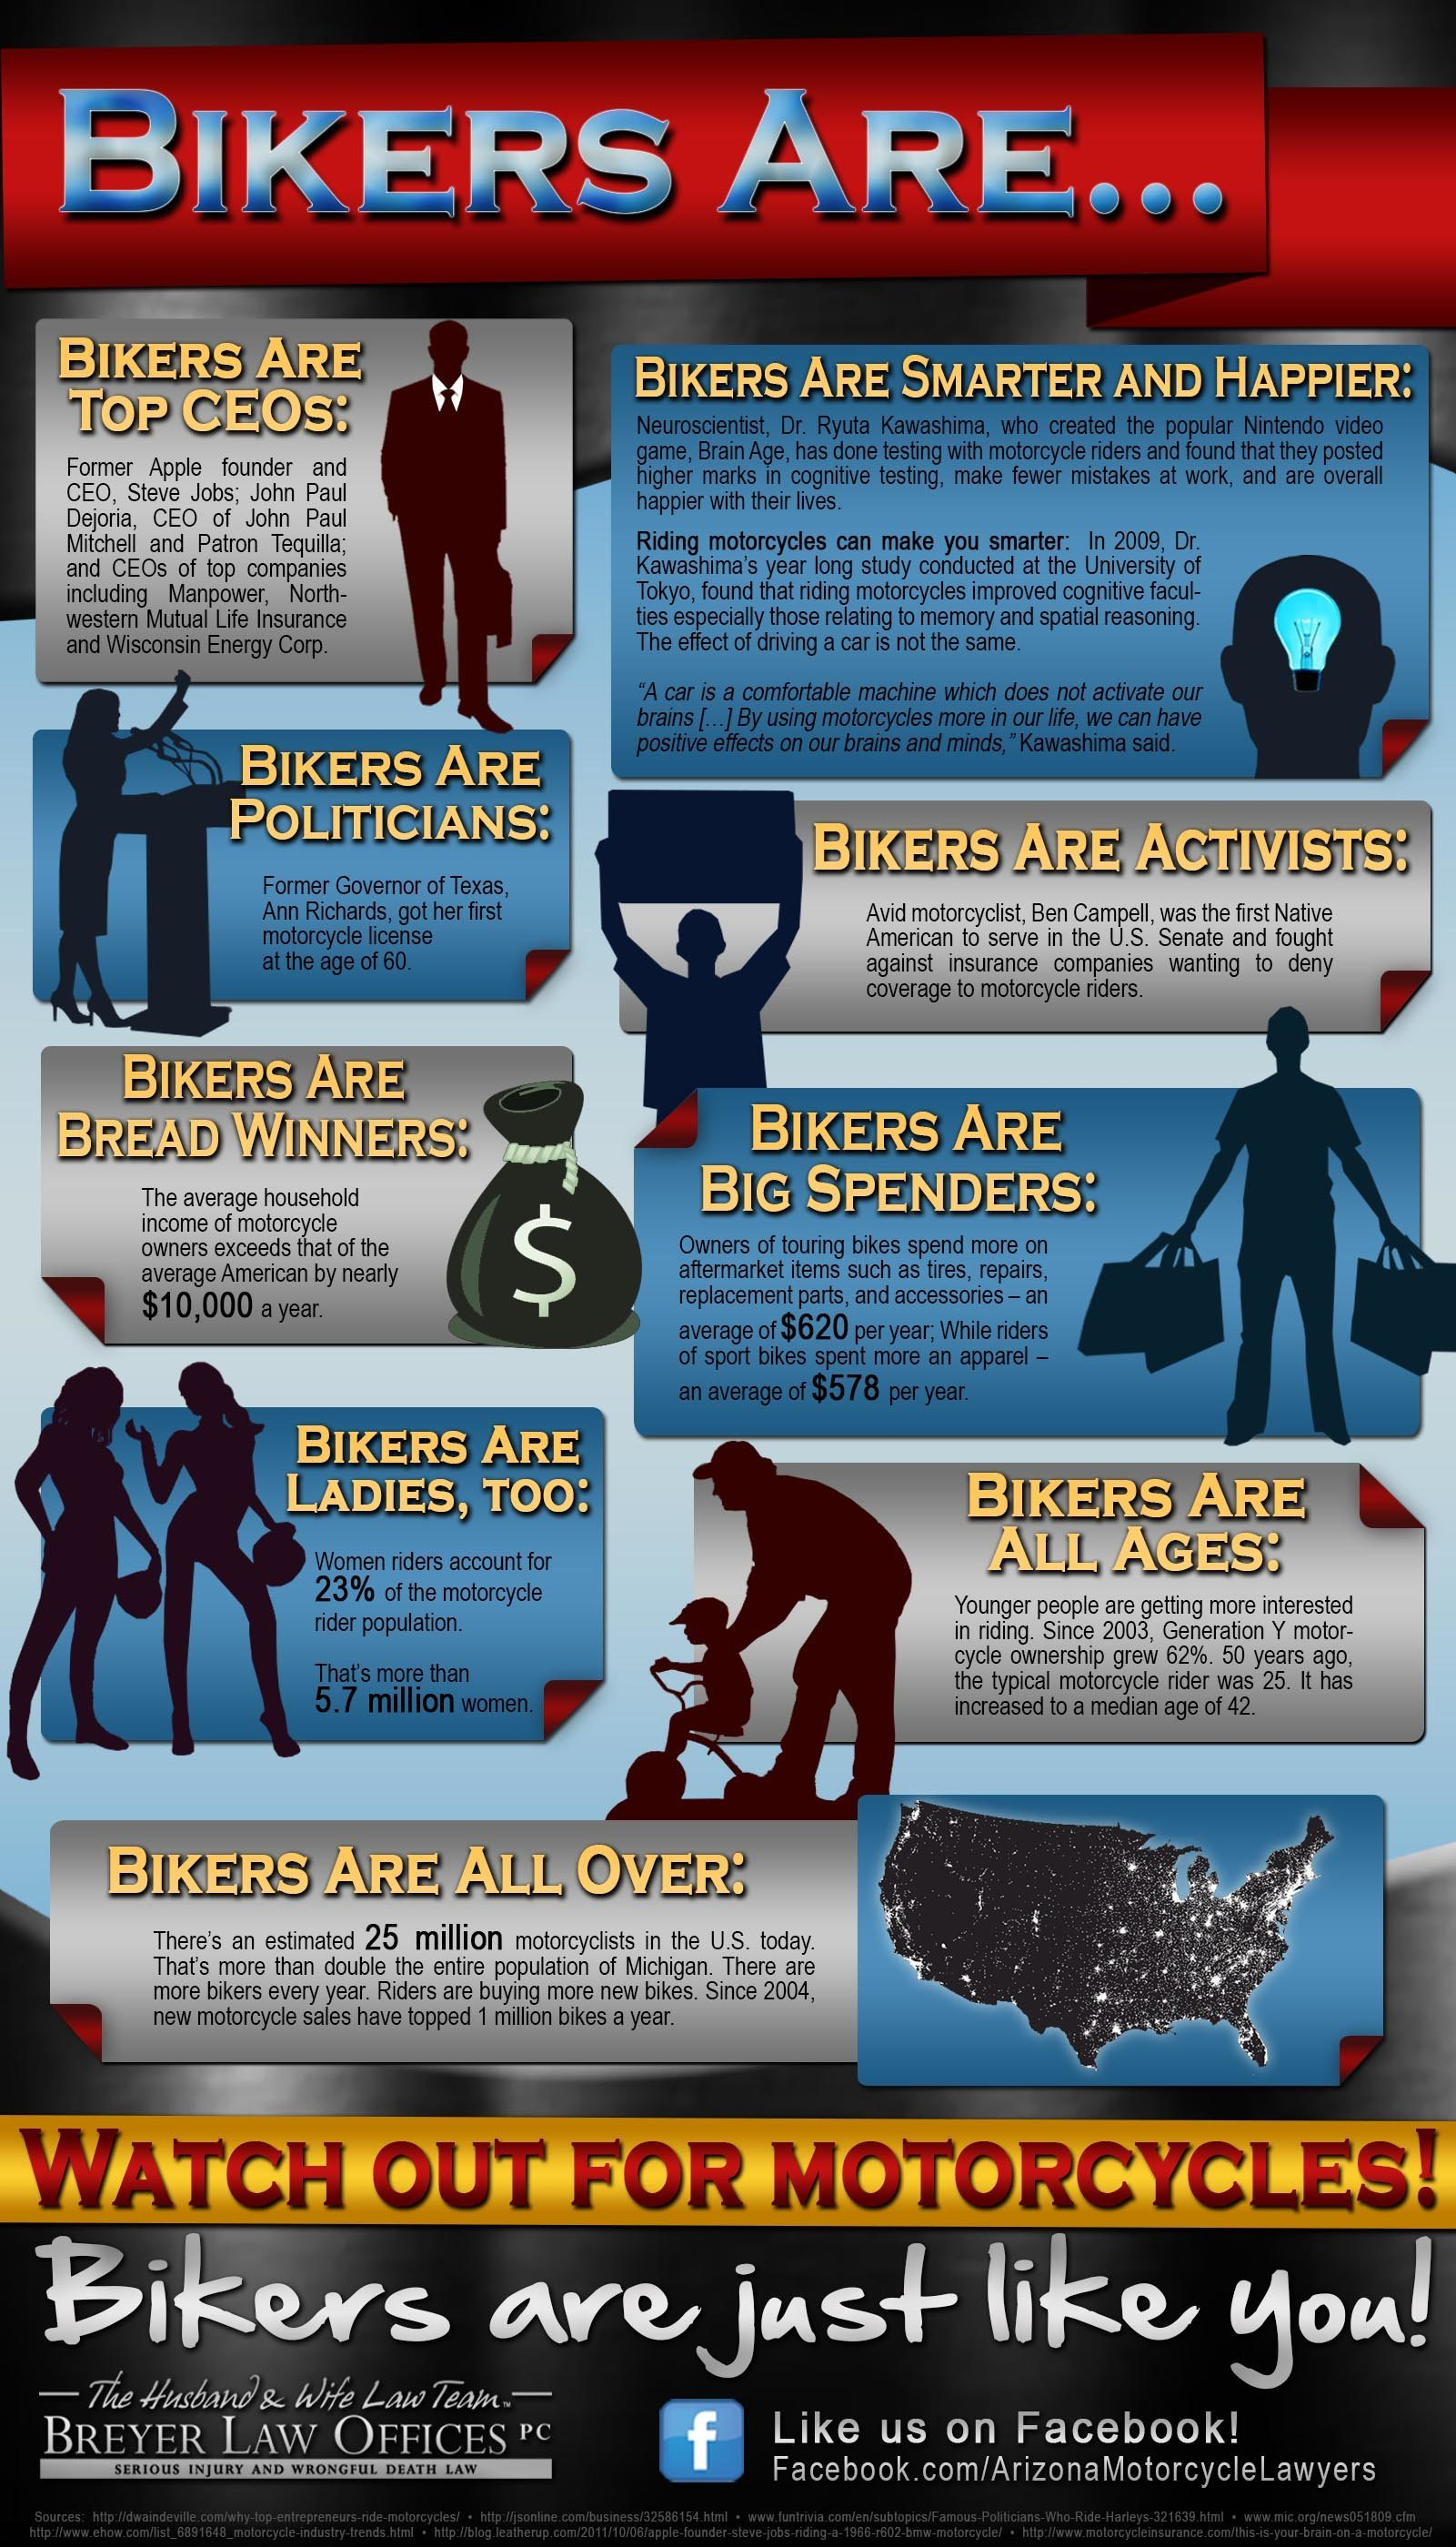 https://www.breyerlaw.com/articles/fun-motorcyclist-facts.html